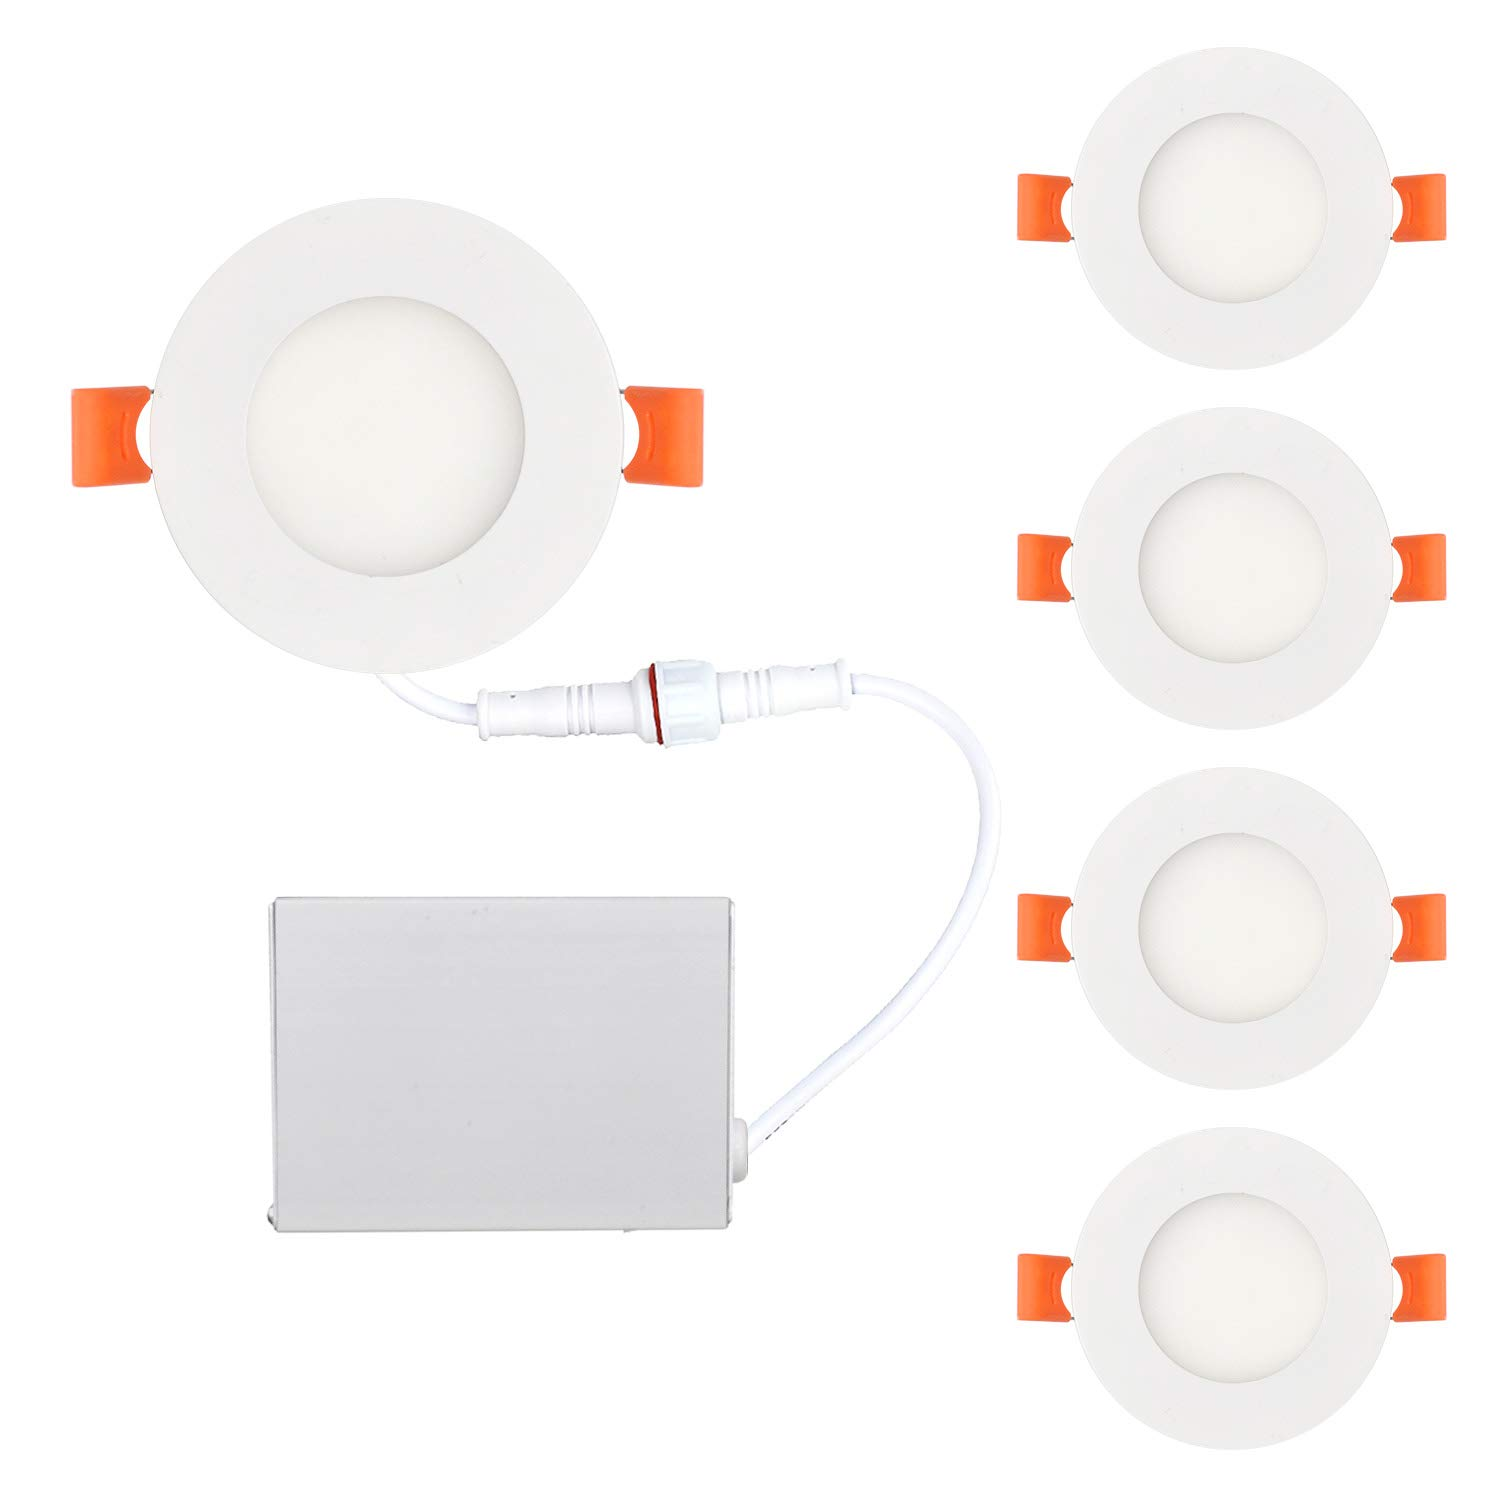 OSTWIN 3 inch 6W (30 Watt Repl.) IC Rated LED Recessed Low Profile Slim Round Panel Light with Junction Box, Dimmable, 5000K Daylight 420 Lm, 4 Pack No Can Needed ETL & Energy Star Listed